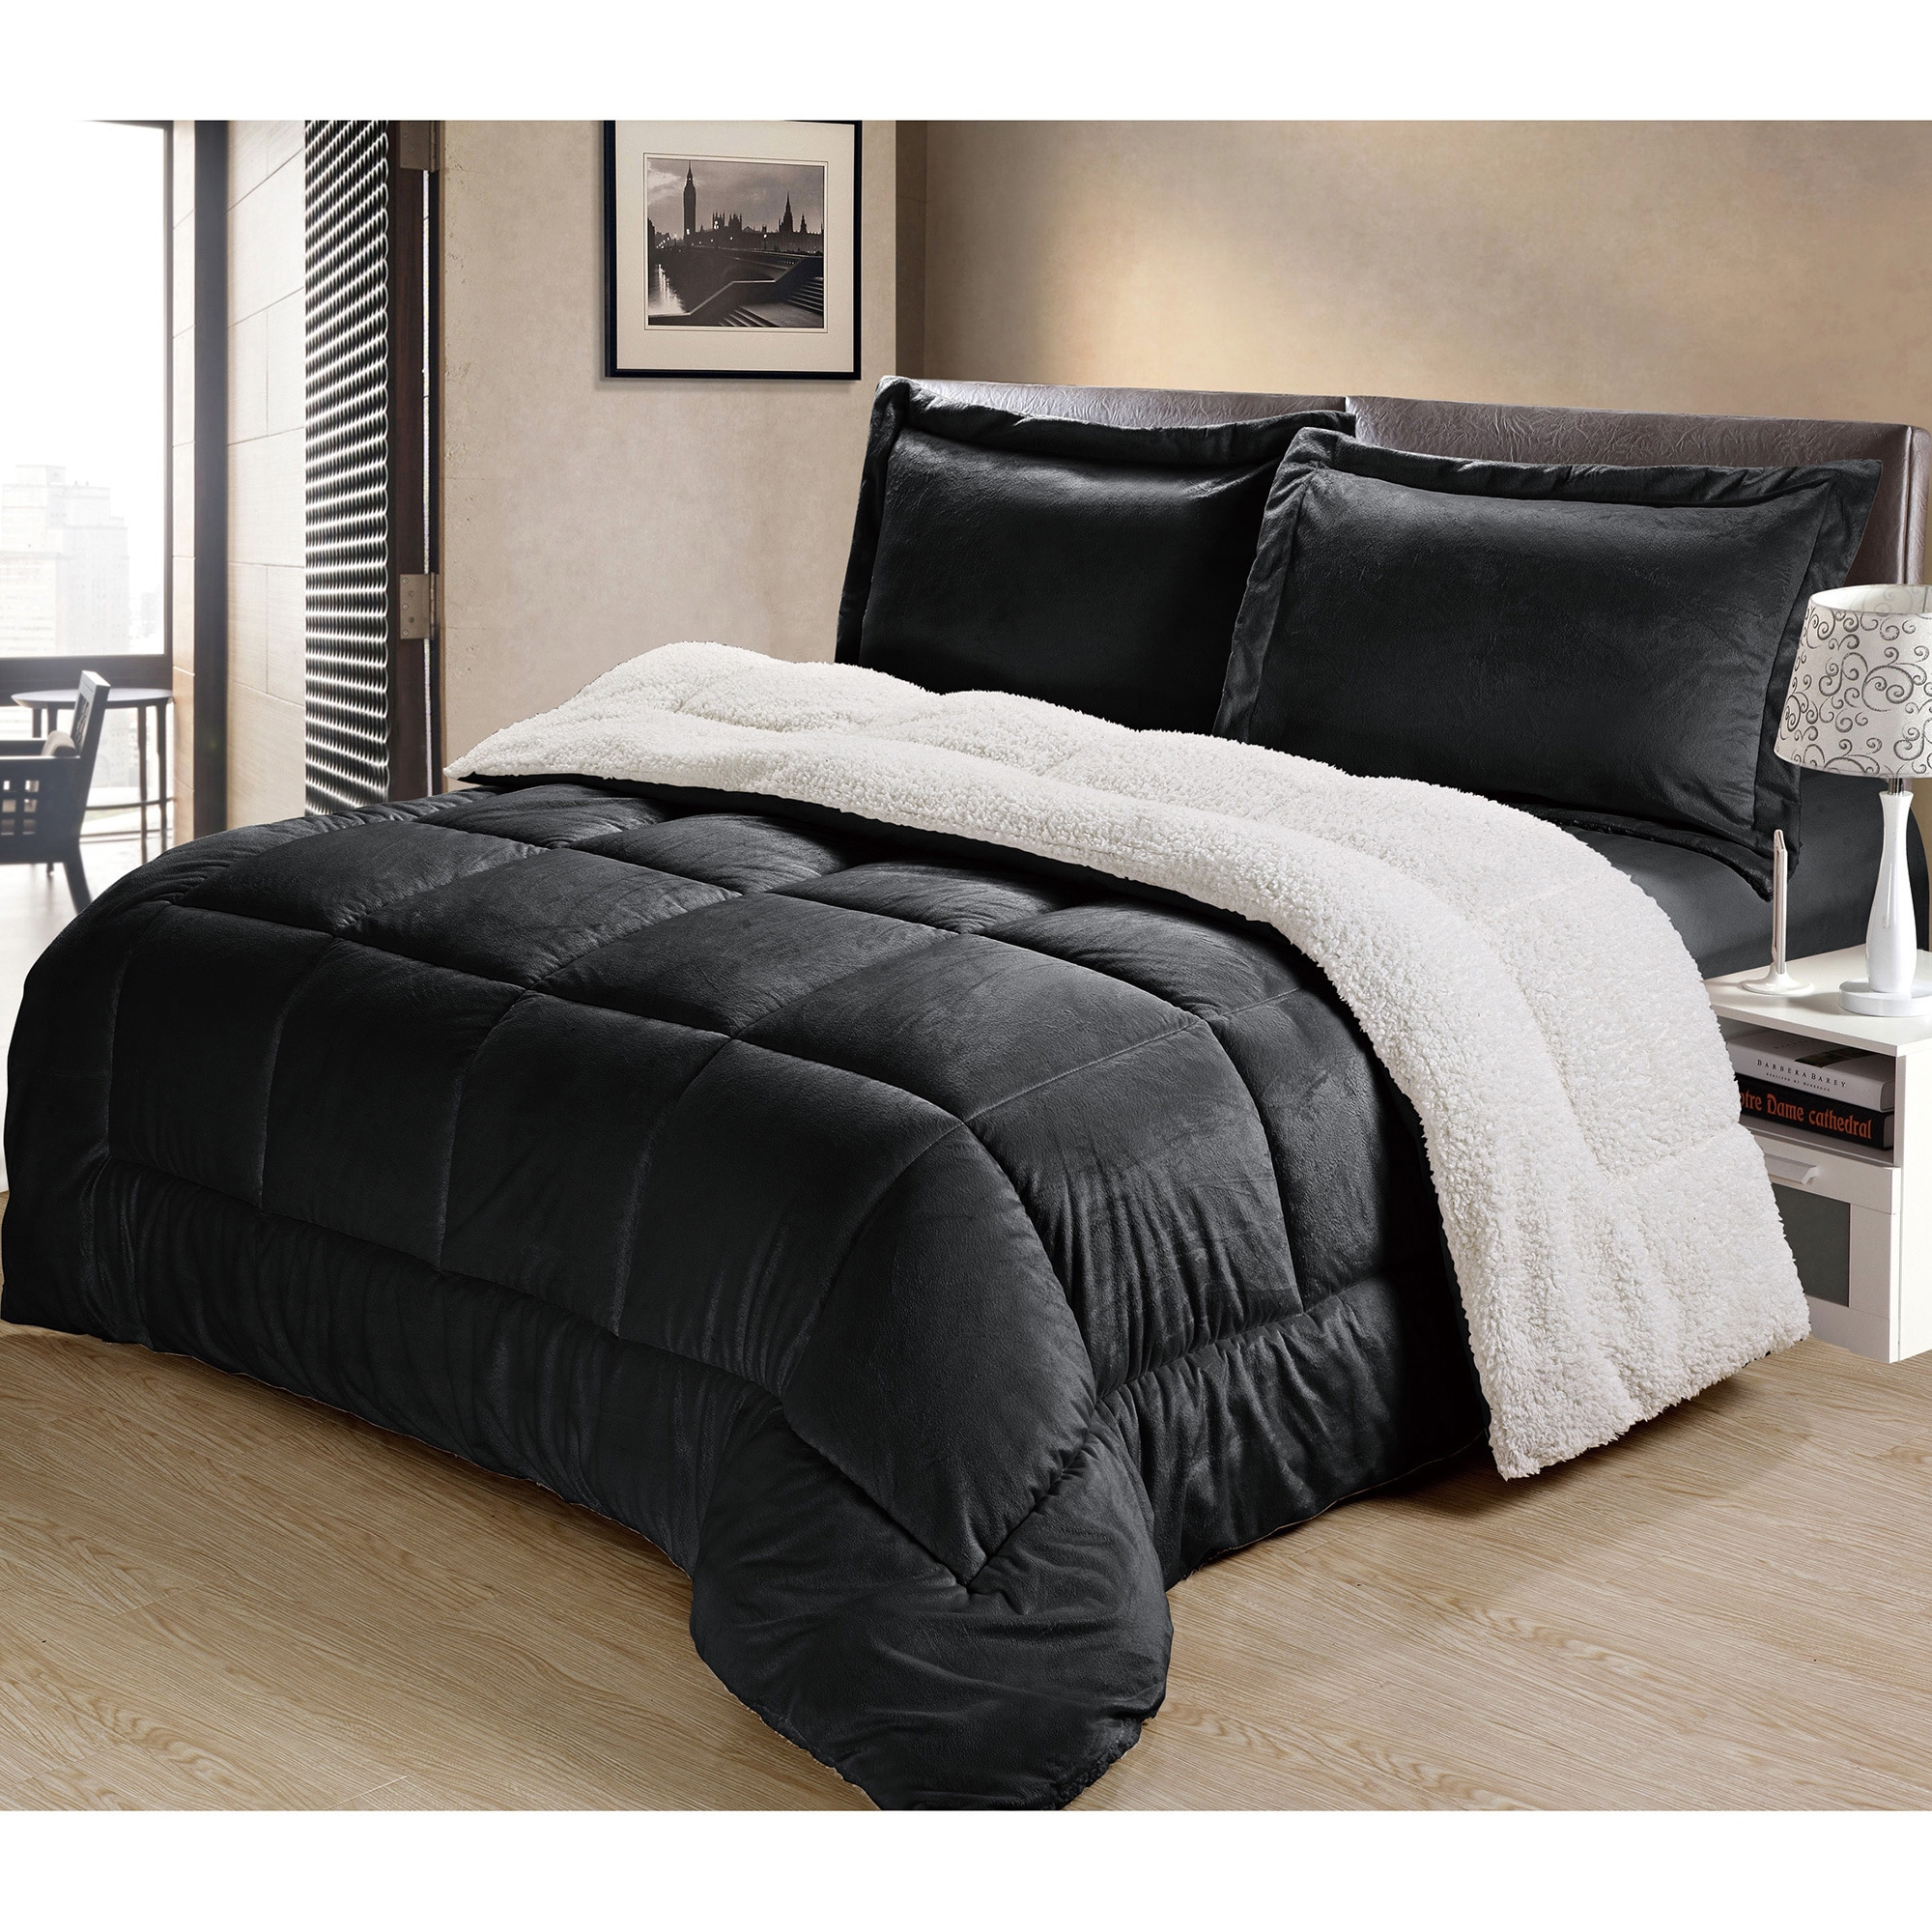 comforter microsuede micro essence ip walmart suede dakota home piece set com